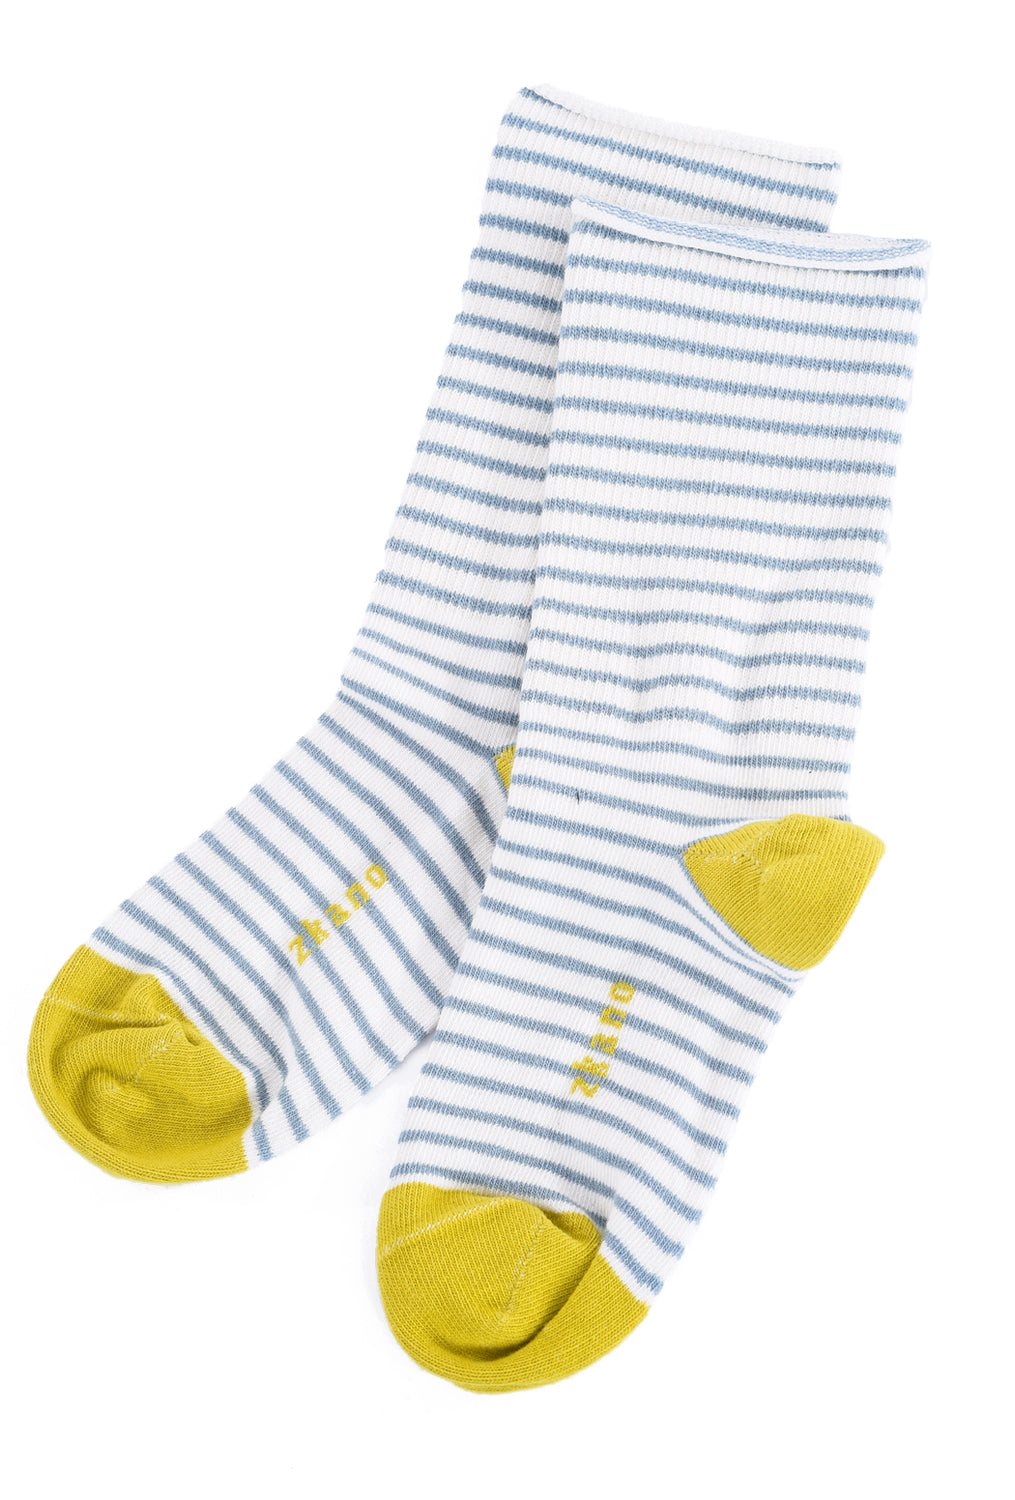 Little River Sock Mill Rose Stripe Slouch Socks, Natural